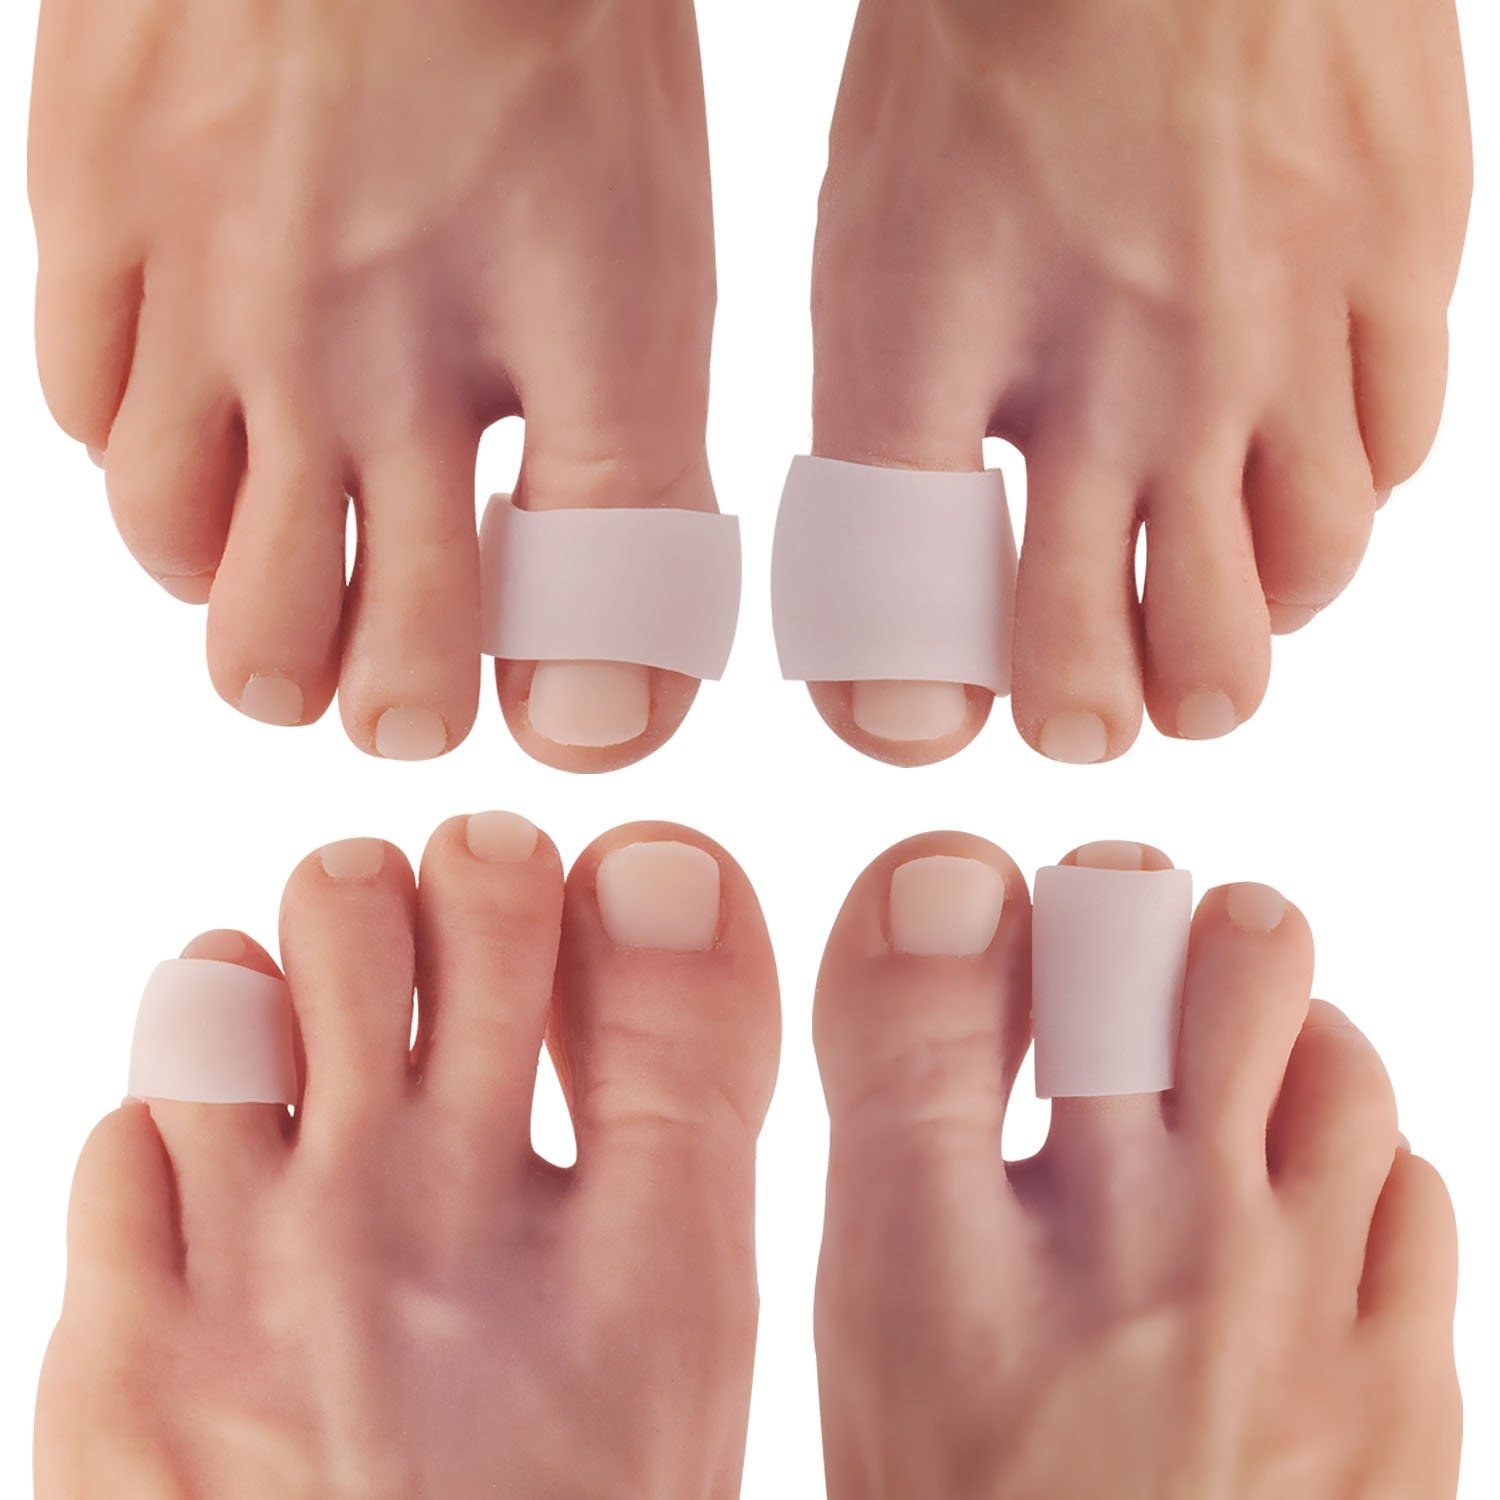 Two sets of feet with various toe protectors on different toes